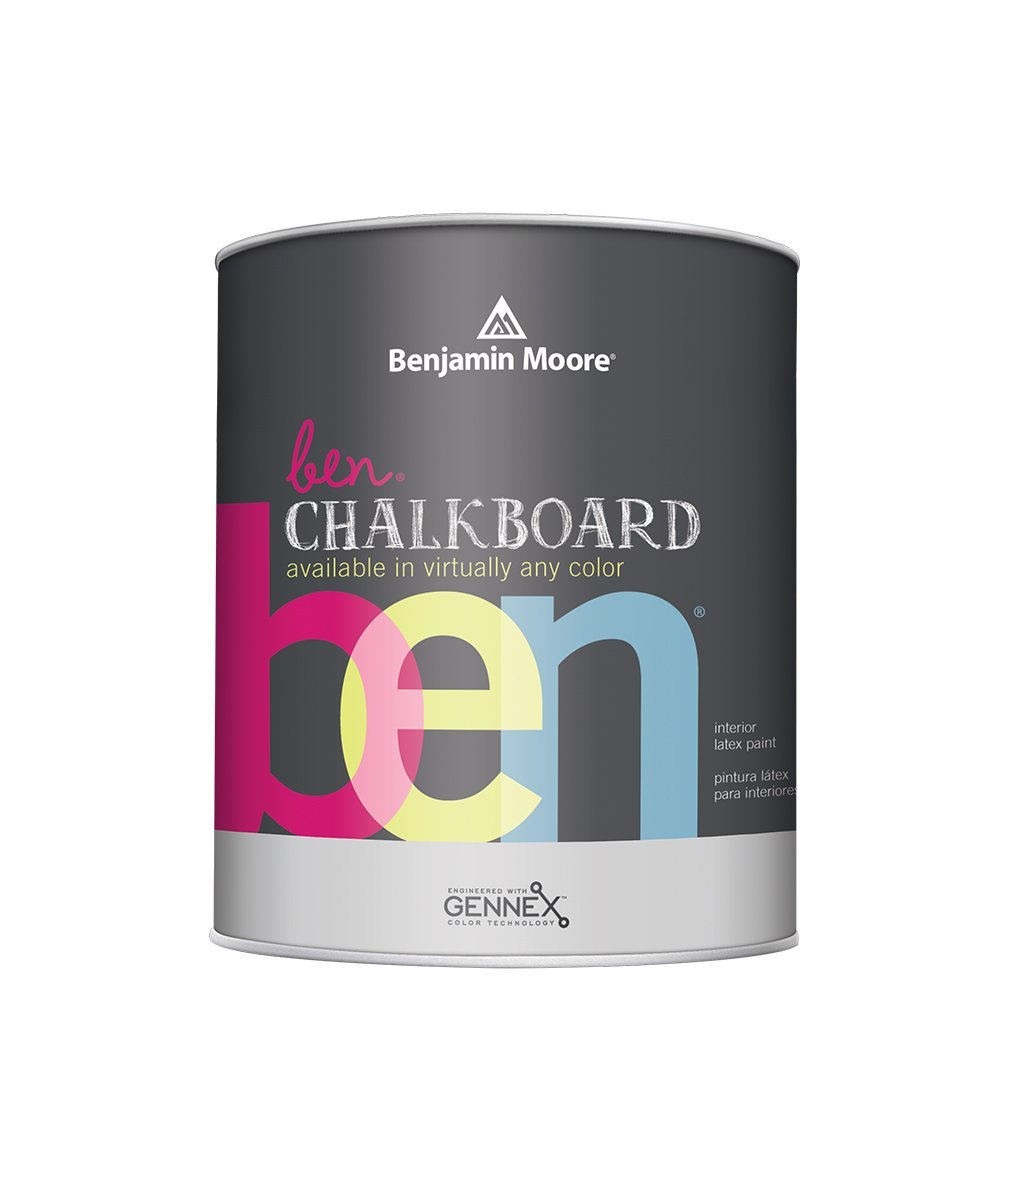 Benjamin Moore chalkboard paint available in Quart size at JC Licht.